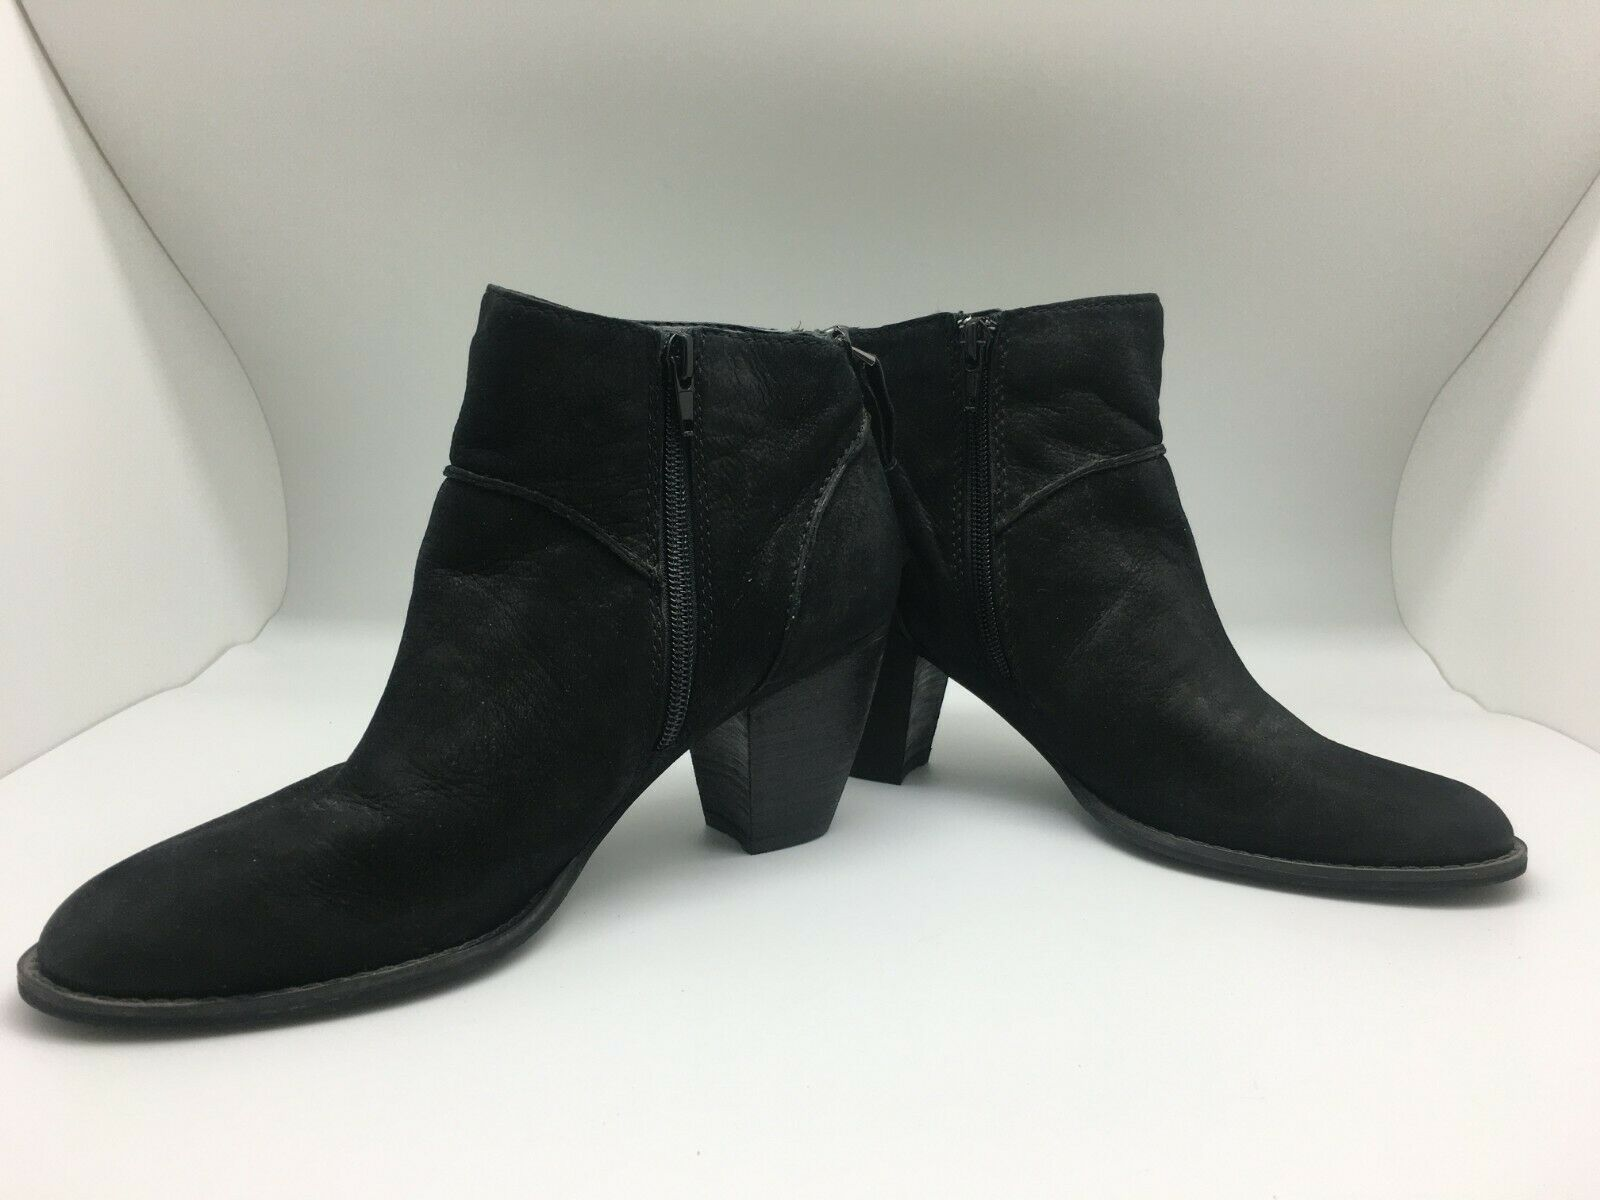 Tesori Classic Black Leather Ankle Booties With Small Heel Zipper Entry Size 8 M